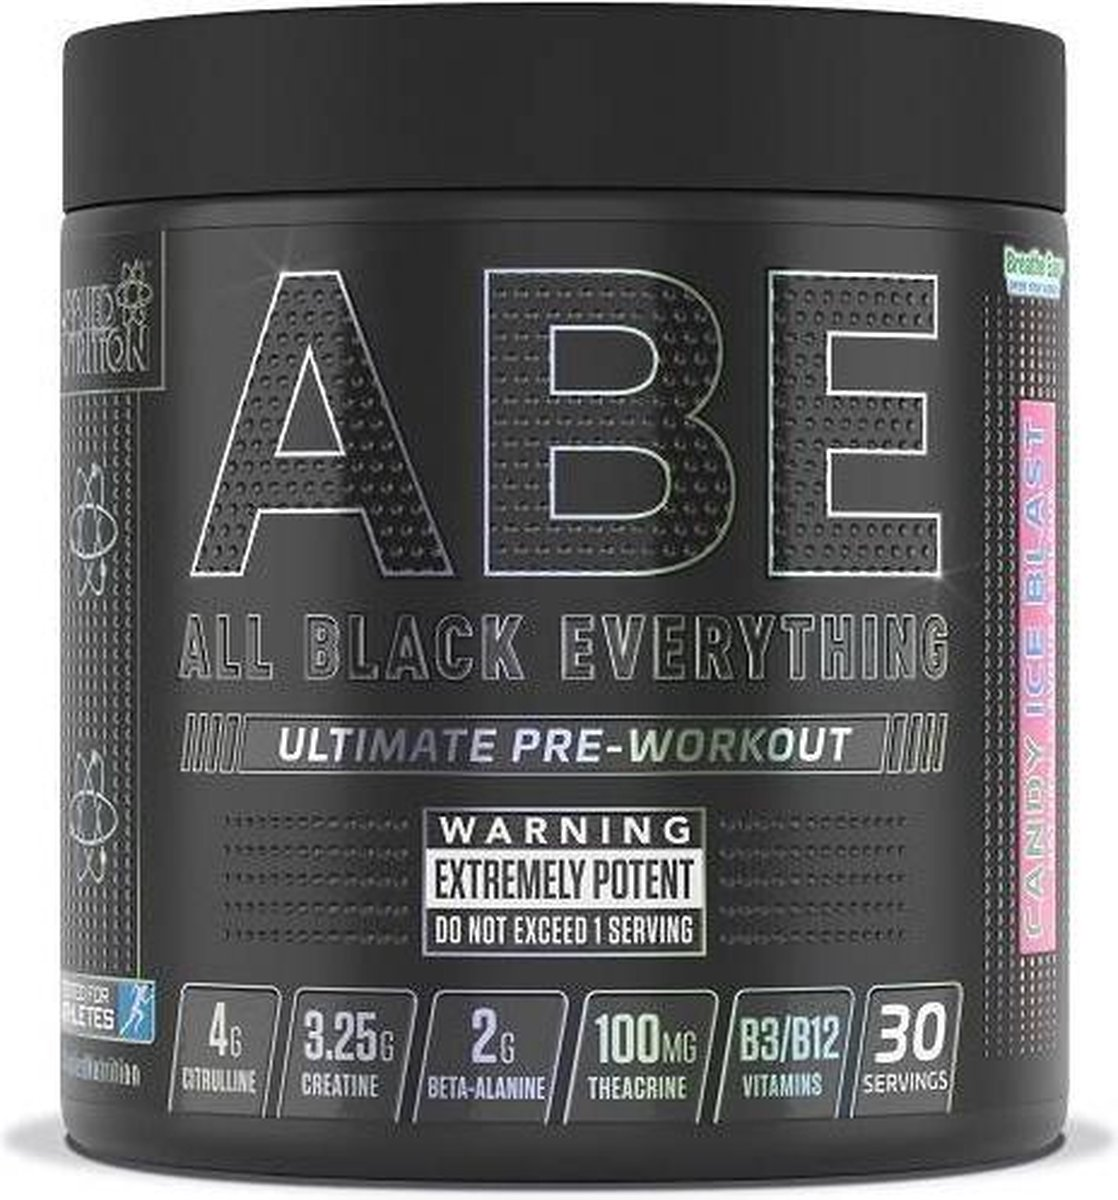 Applied Nutrition - ABE Ultimate Pre-Workout - 315 g - Candy Ice Blast Smaak - 30 servings